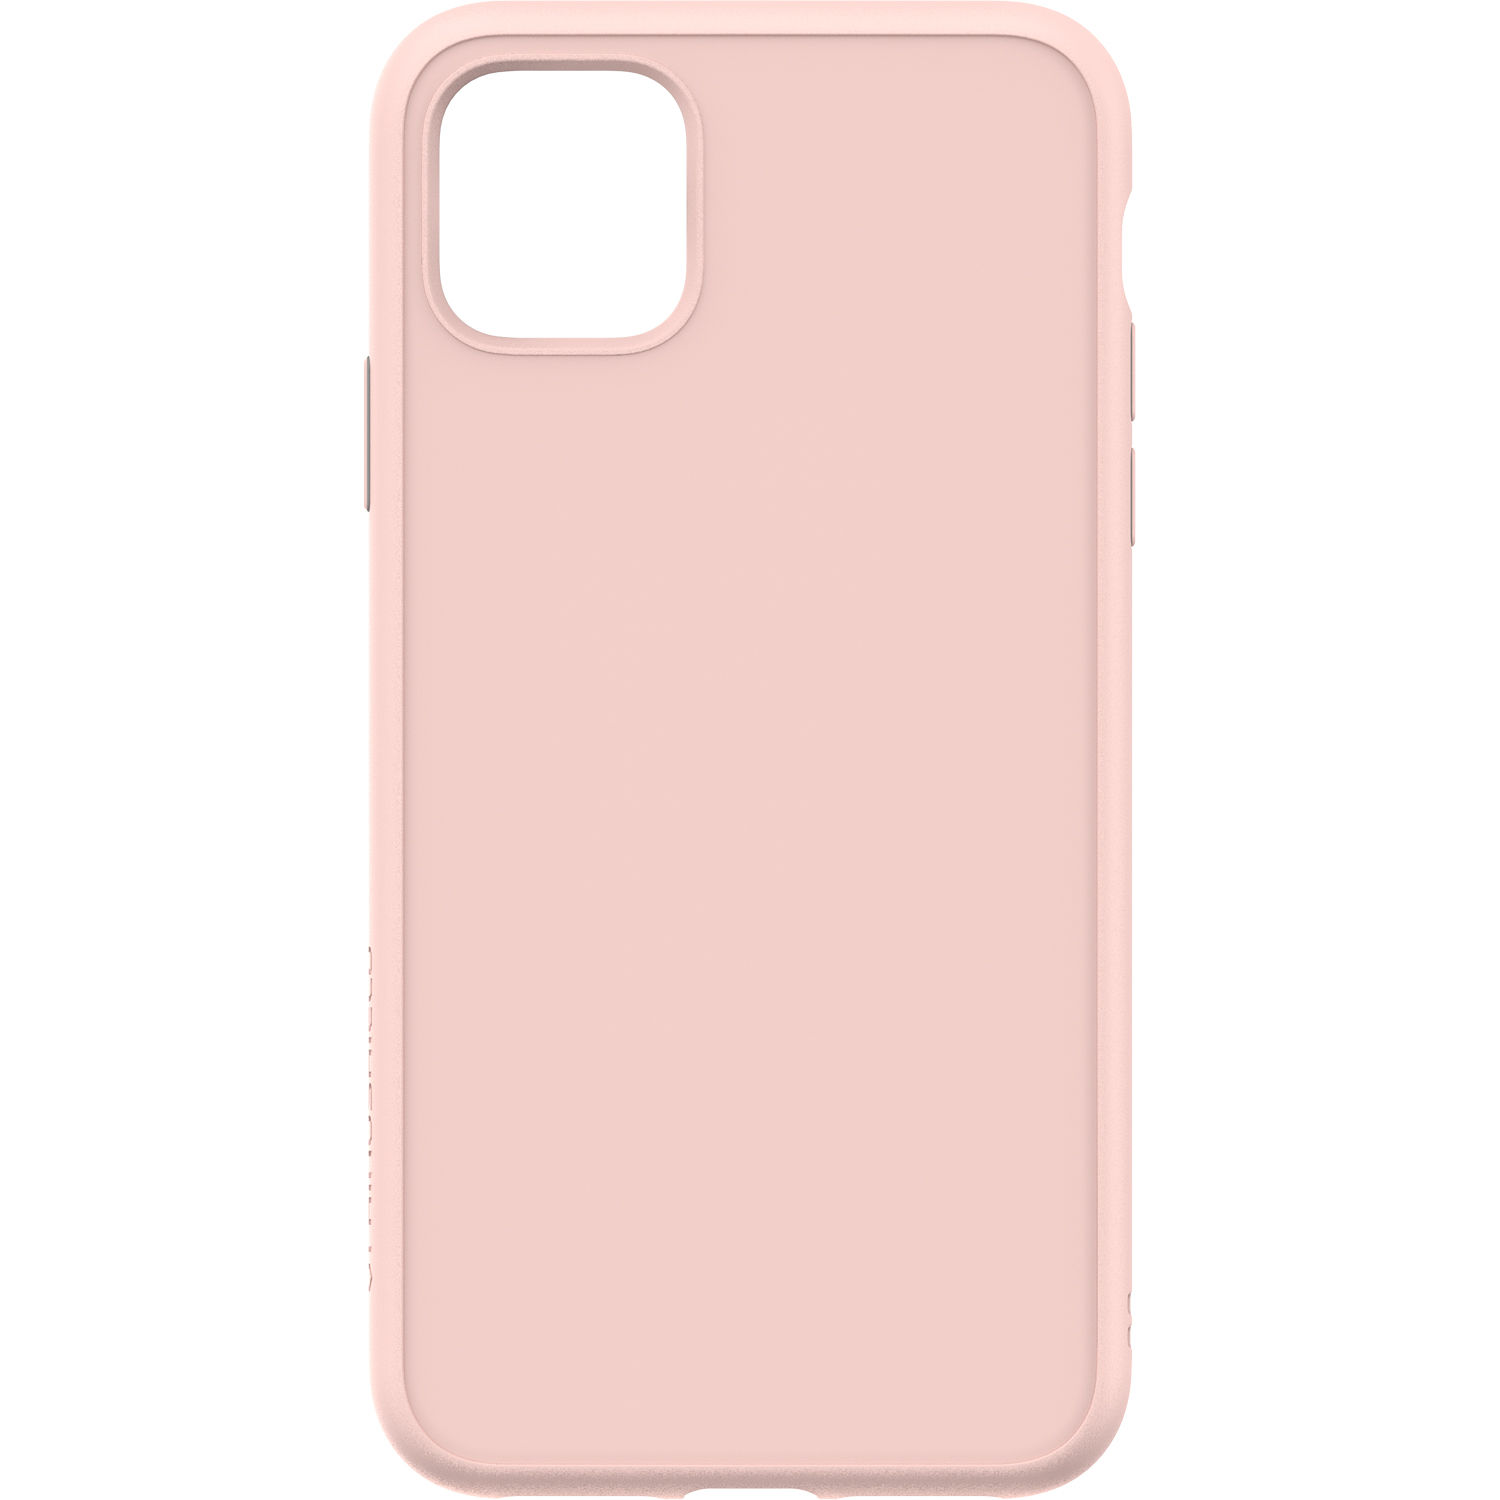 Rhinoshield Solidsuit Case For Iphone 11 Pro Max Ssa0114957 B H